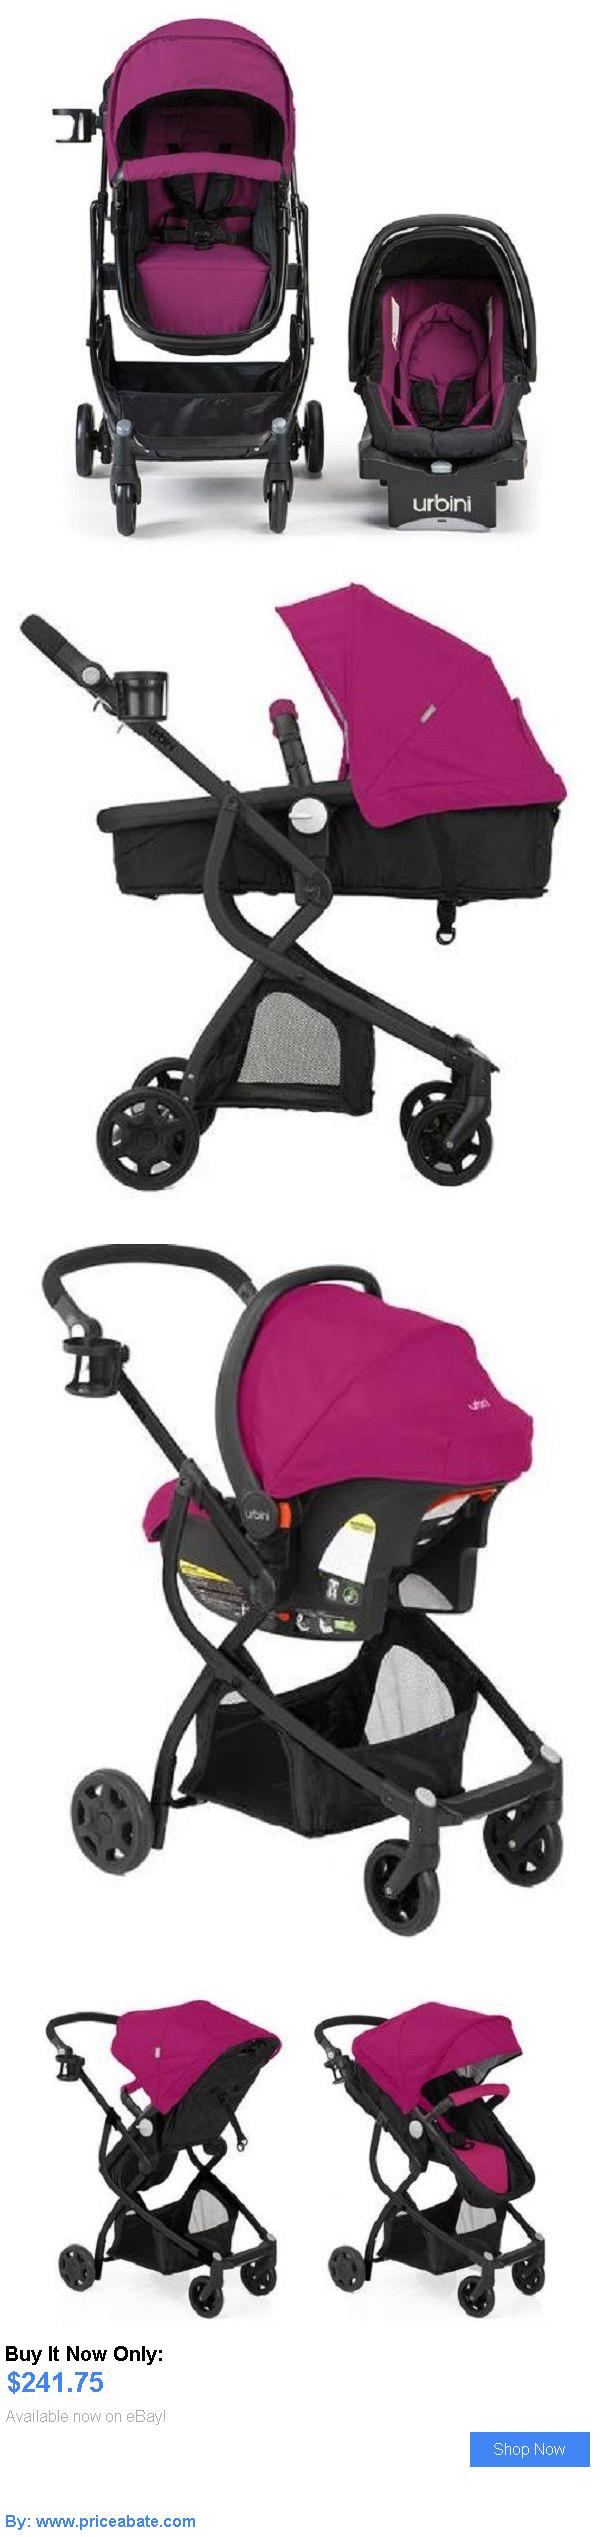 baby kid stuff Car Seat Baby Stroller Combo For Girls